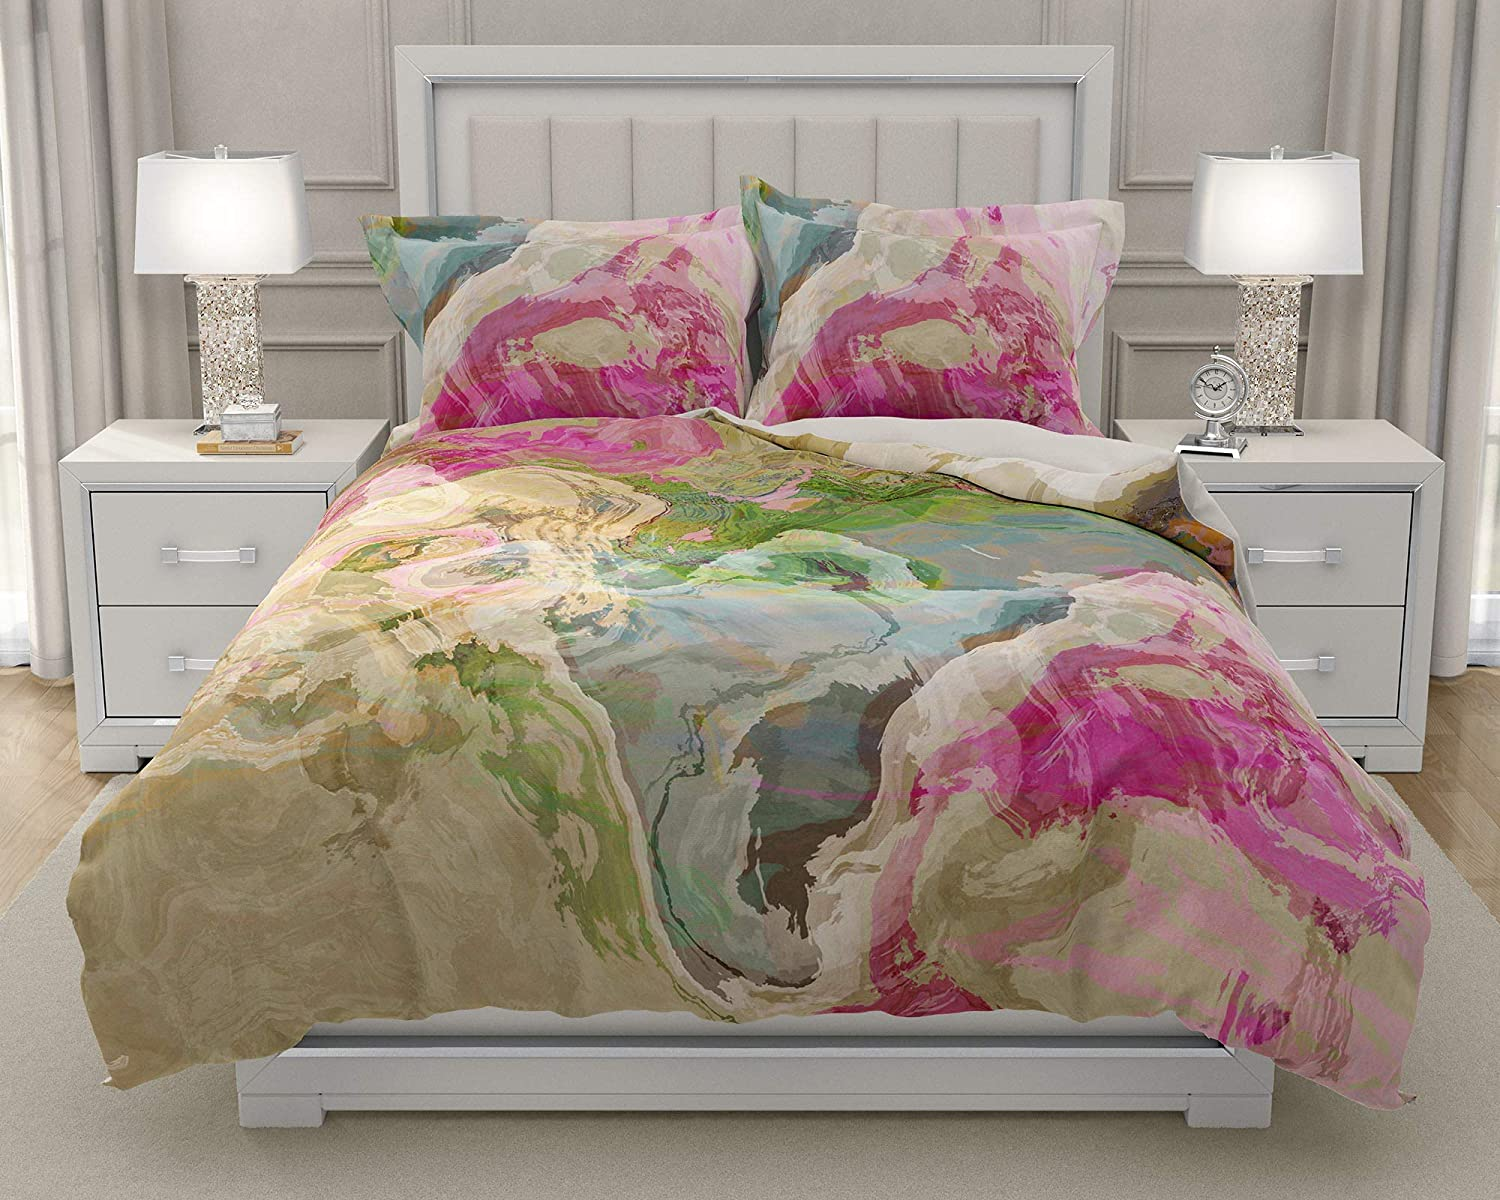 Image of Home and Kitchen King or Queen 3 pc Duvet Cover Set with abstract art, Dream